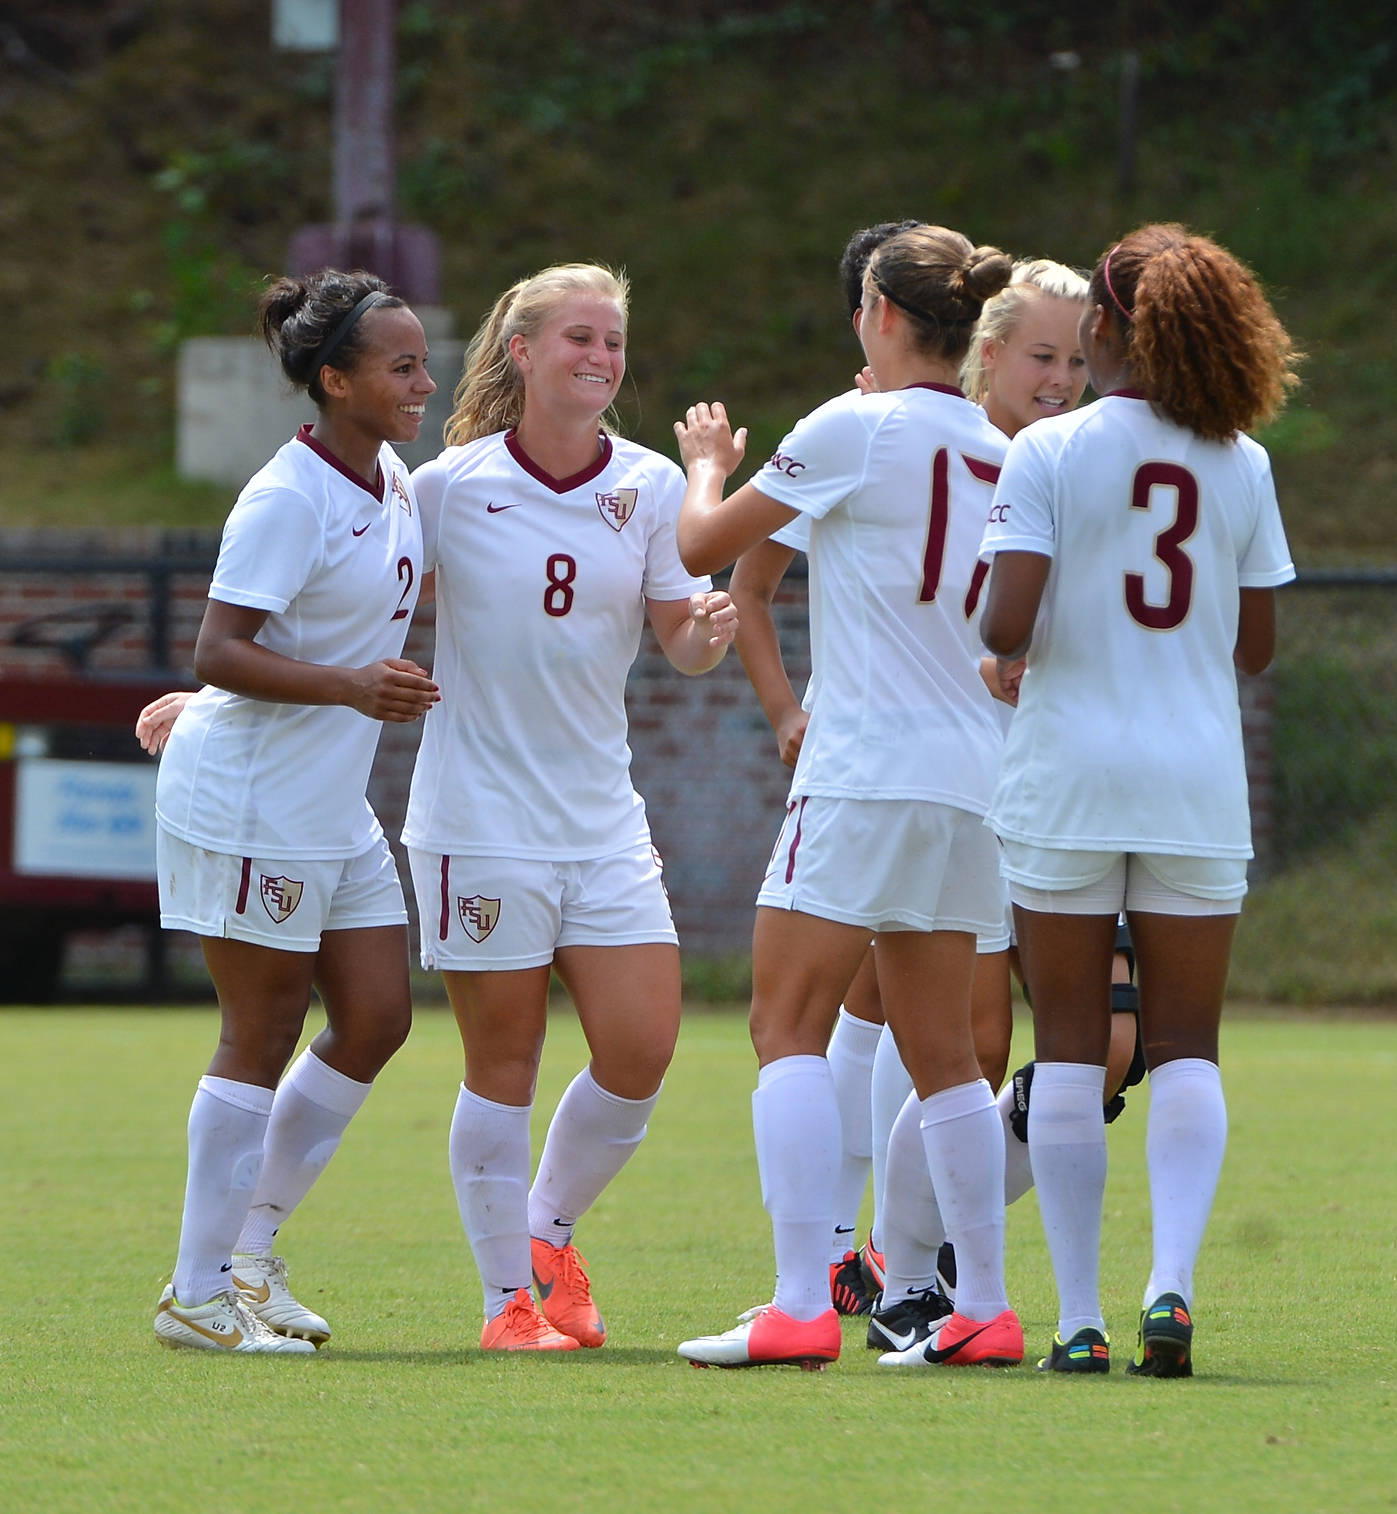 The Seminoles celebrate after Michaela Hahn scores her first career goal.